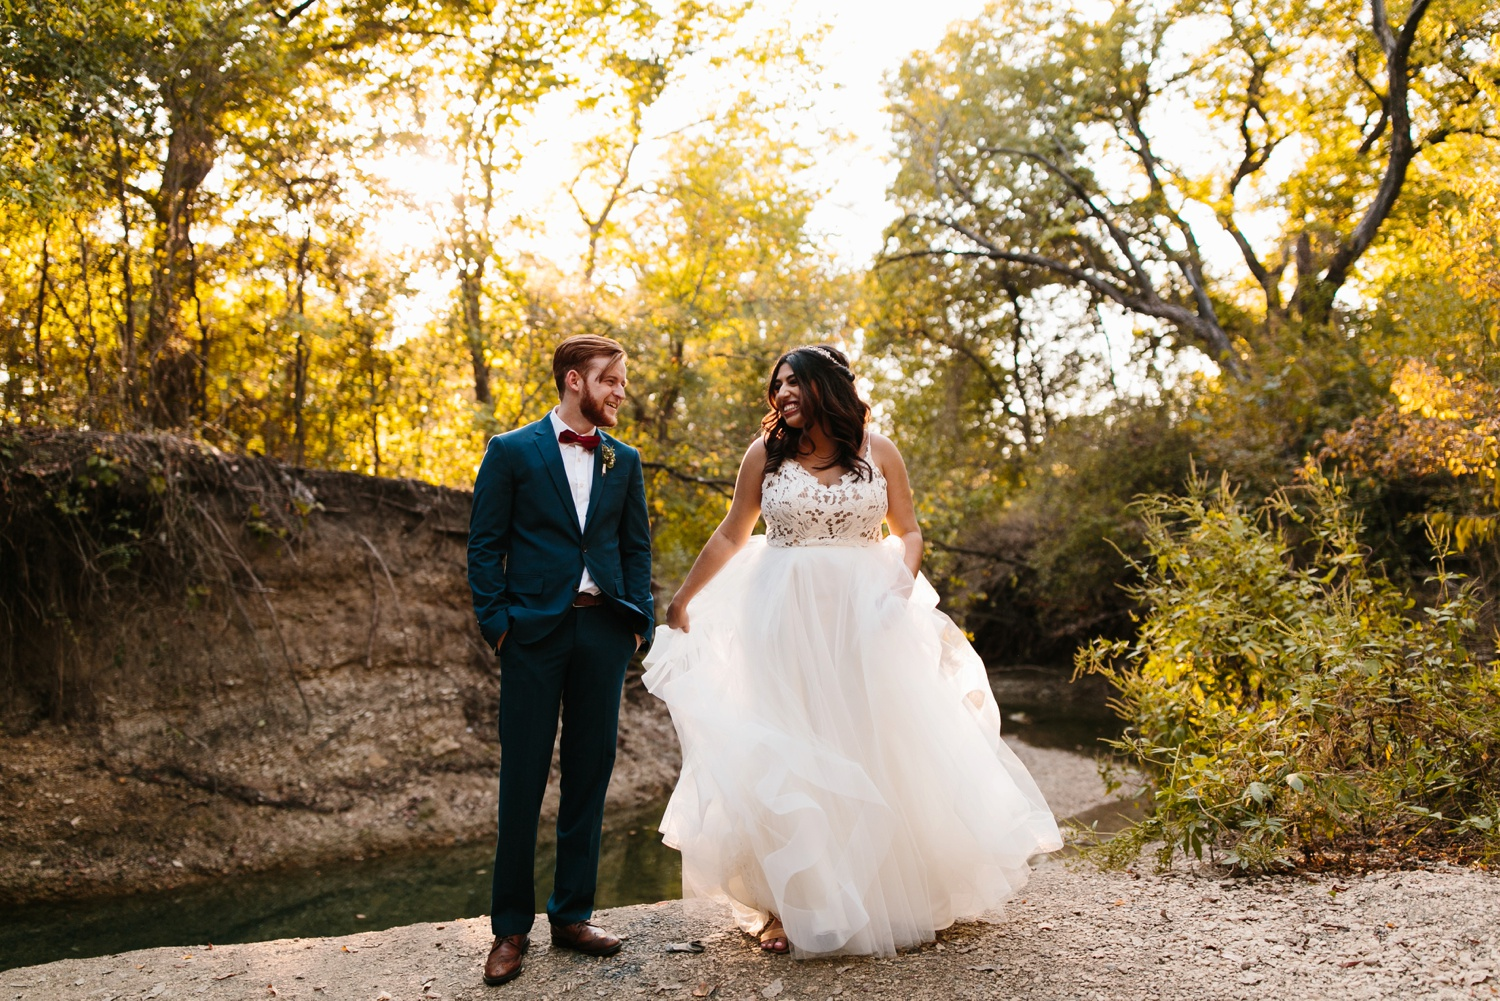 Grant + Lysette | a vibrant, deep burgundy and navy, and mixed metals wedding at Hidden Pines Chapel by North Texas Wedding Photographer Rachel Meagan Photography 206